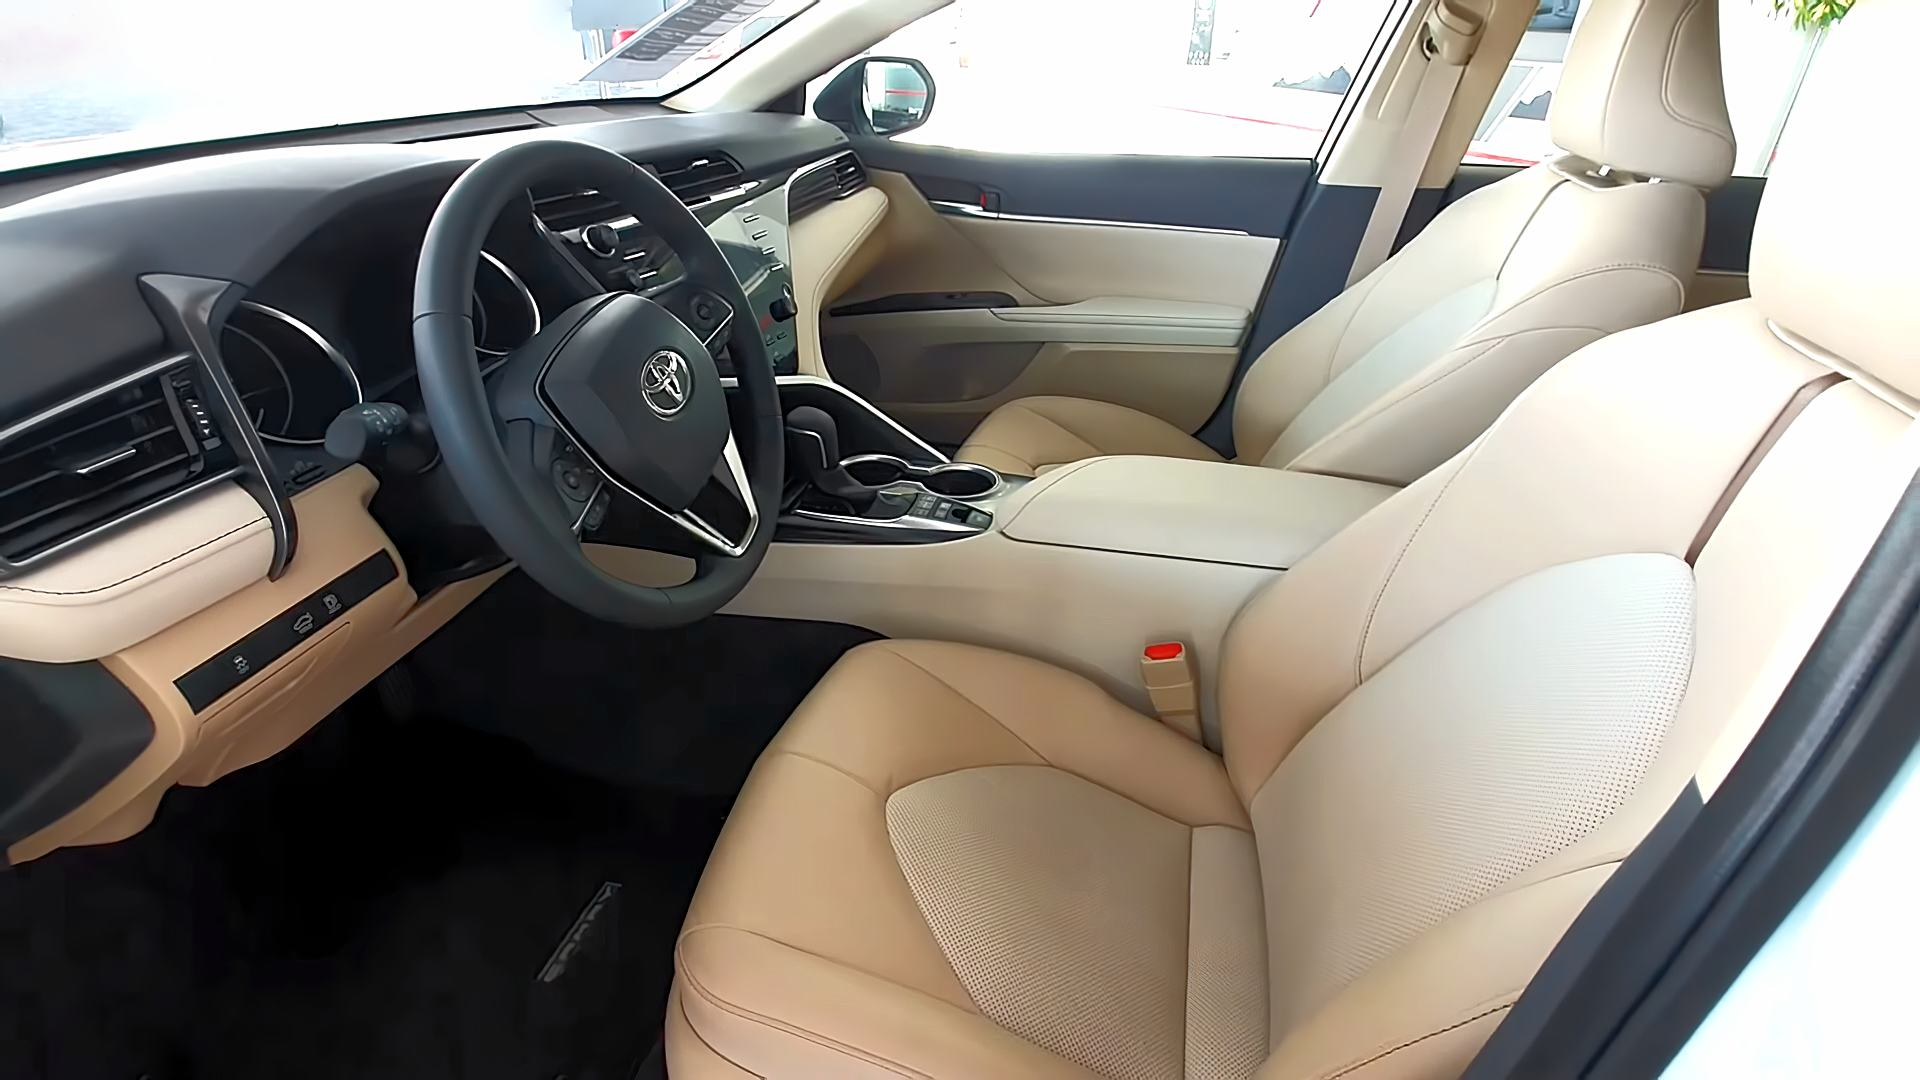 2021 Toyota Camry Interior Colors